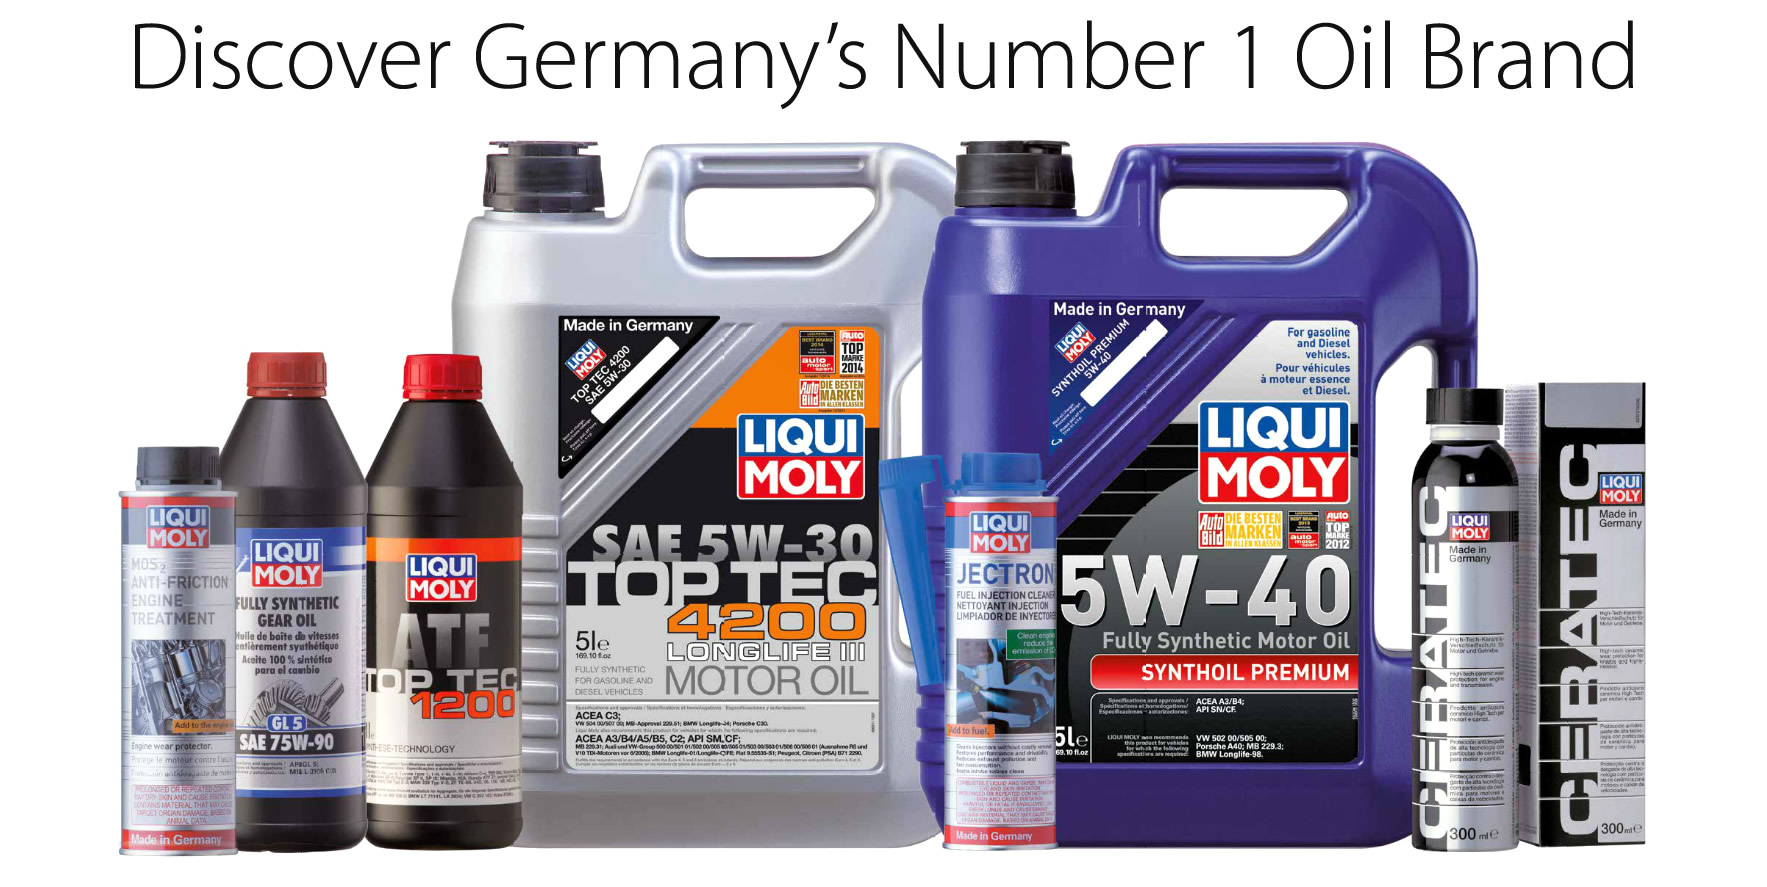 Liqui Moly Oil and Additives